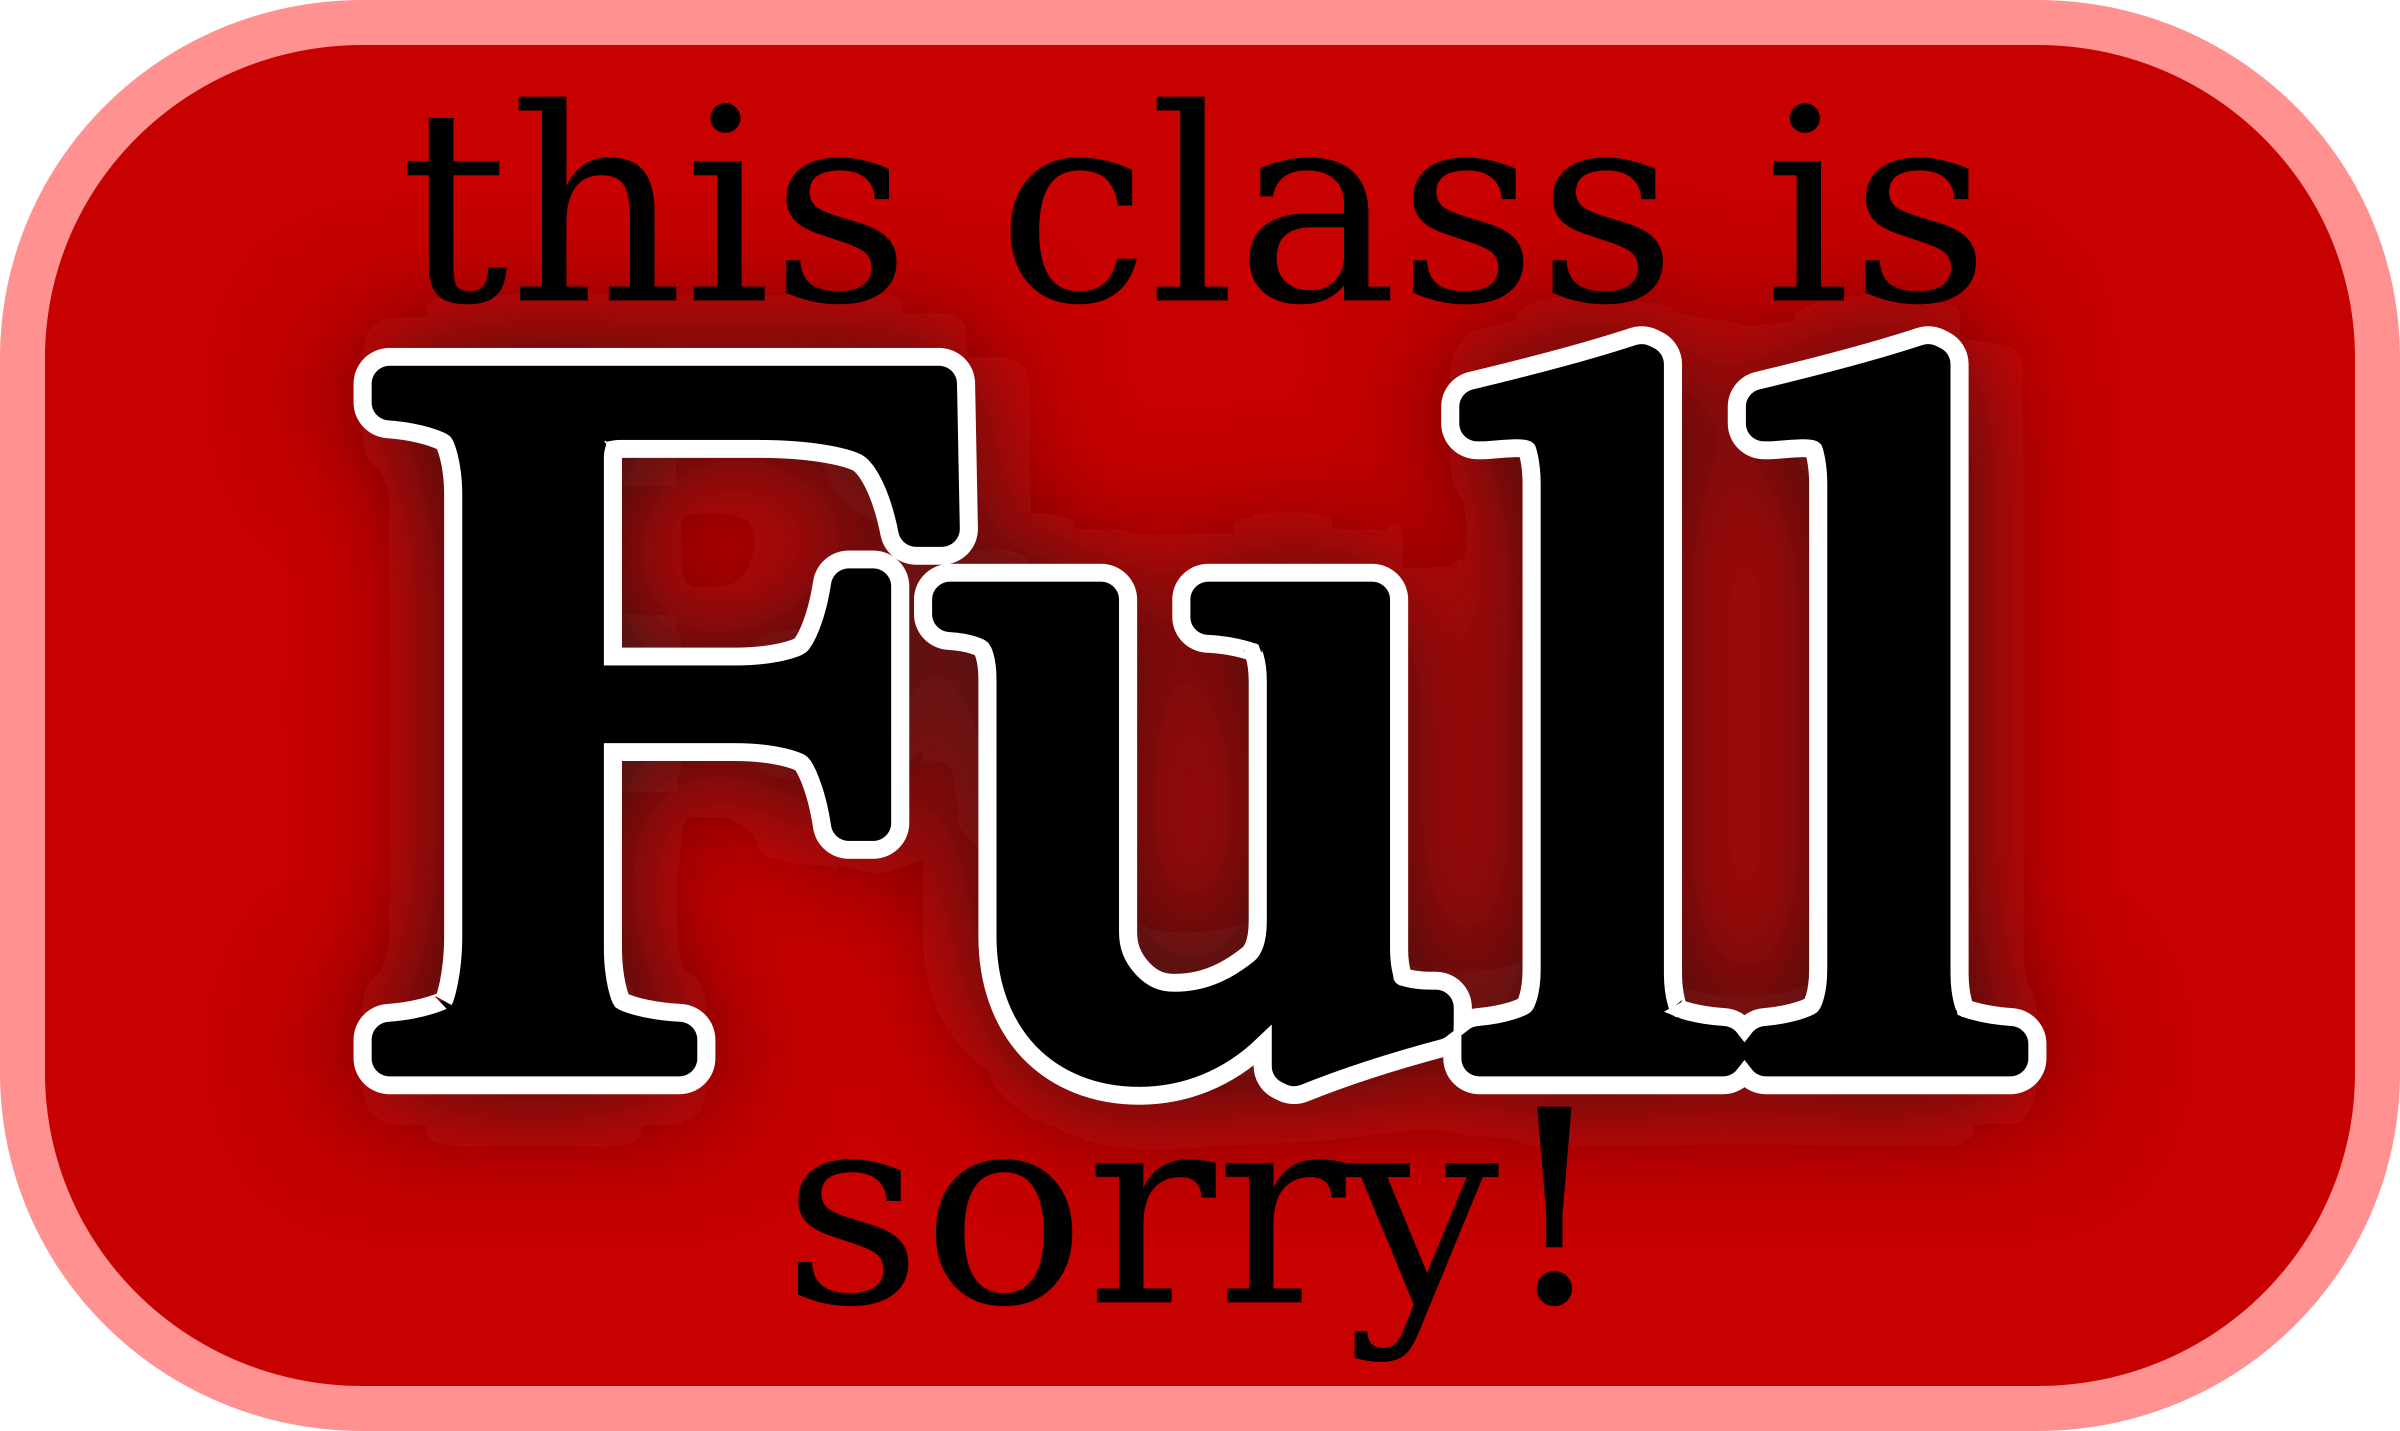 this class is FULL sorry by pbhj